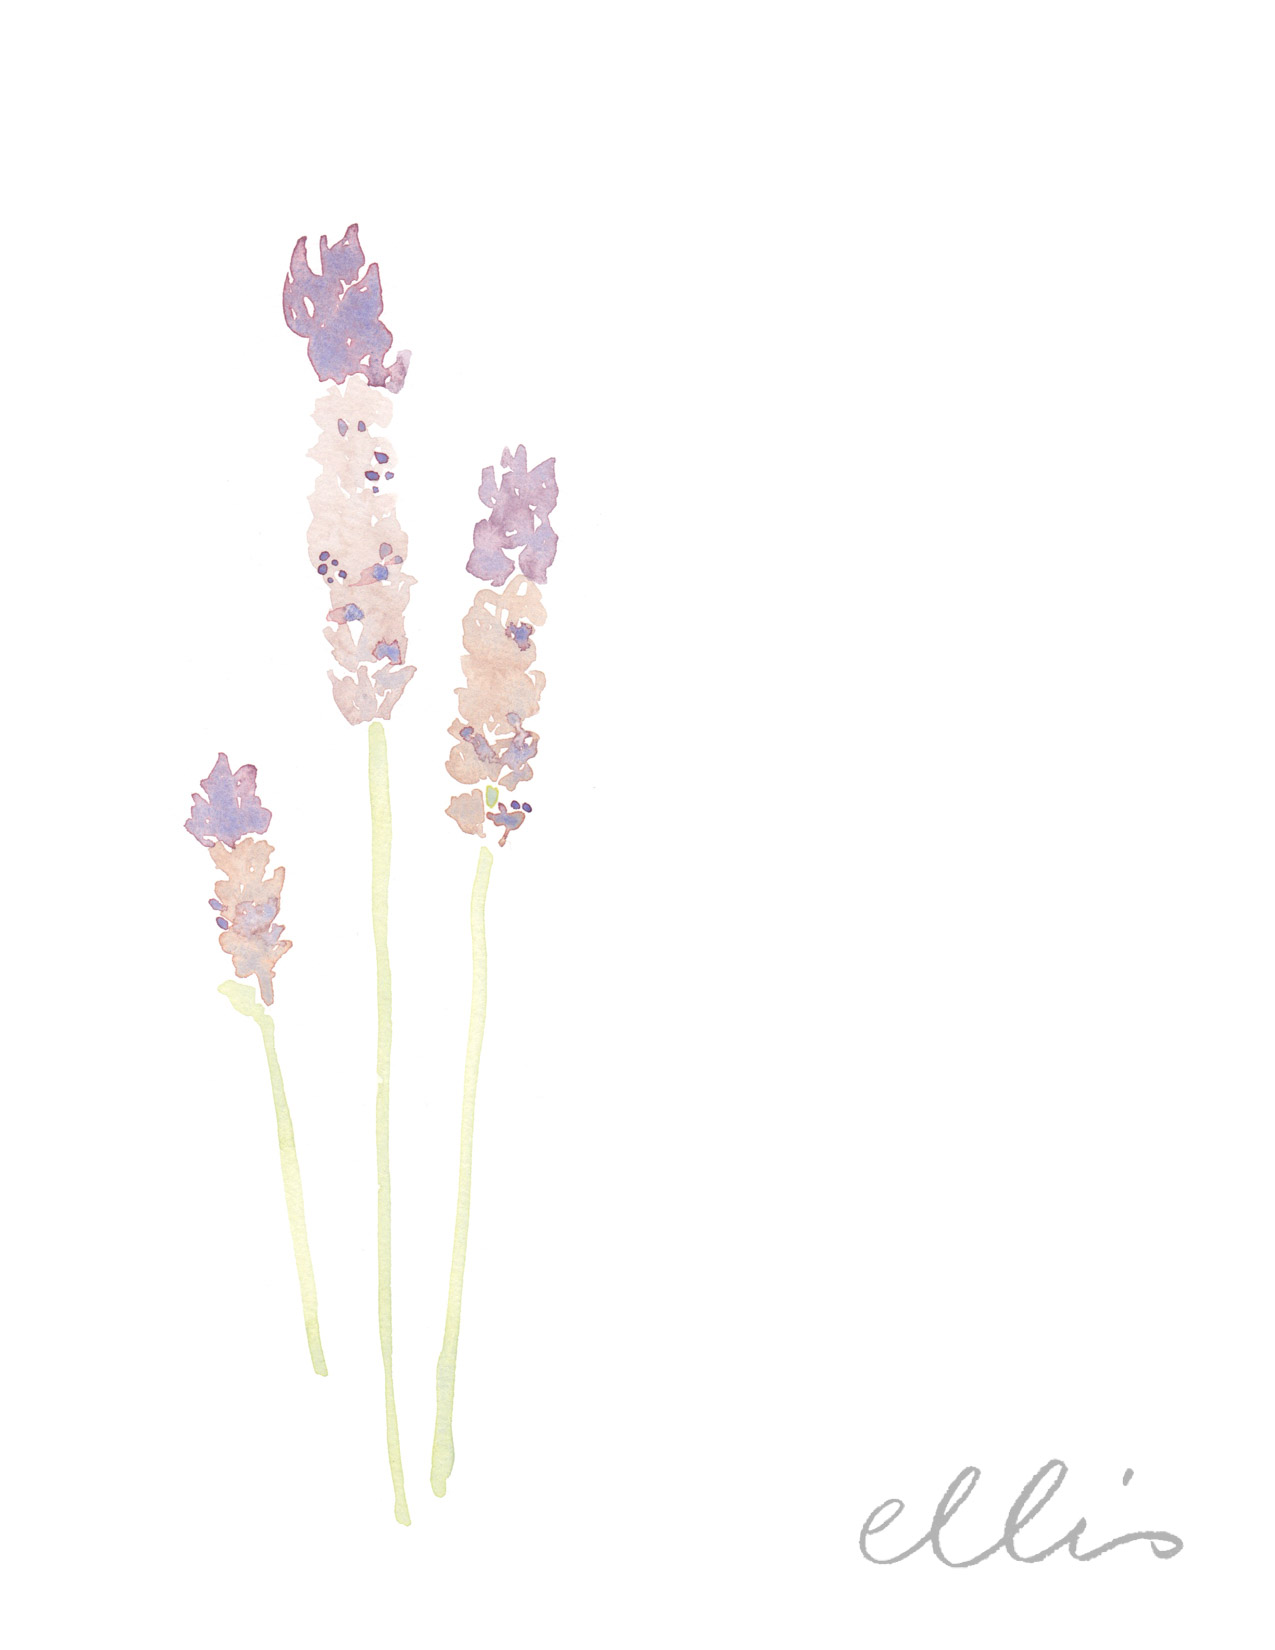 Erin Ellis_100 days project botanical drawings_2013-100.jpg